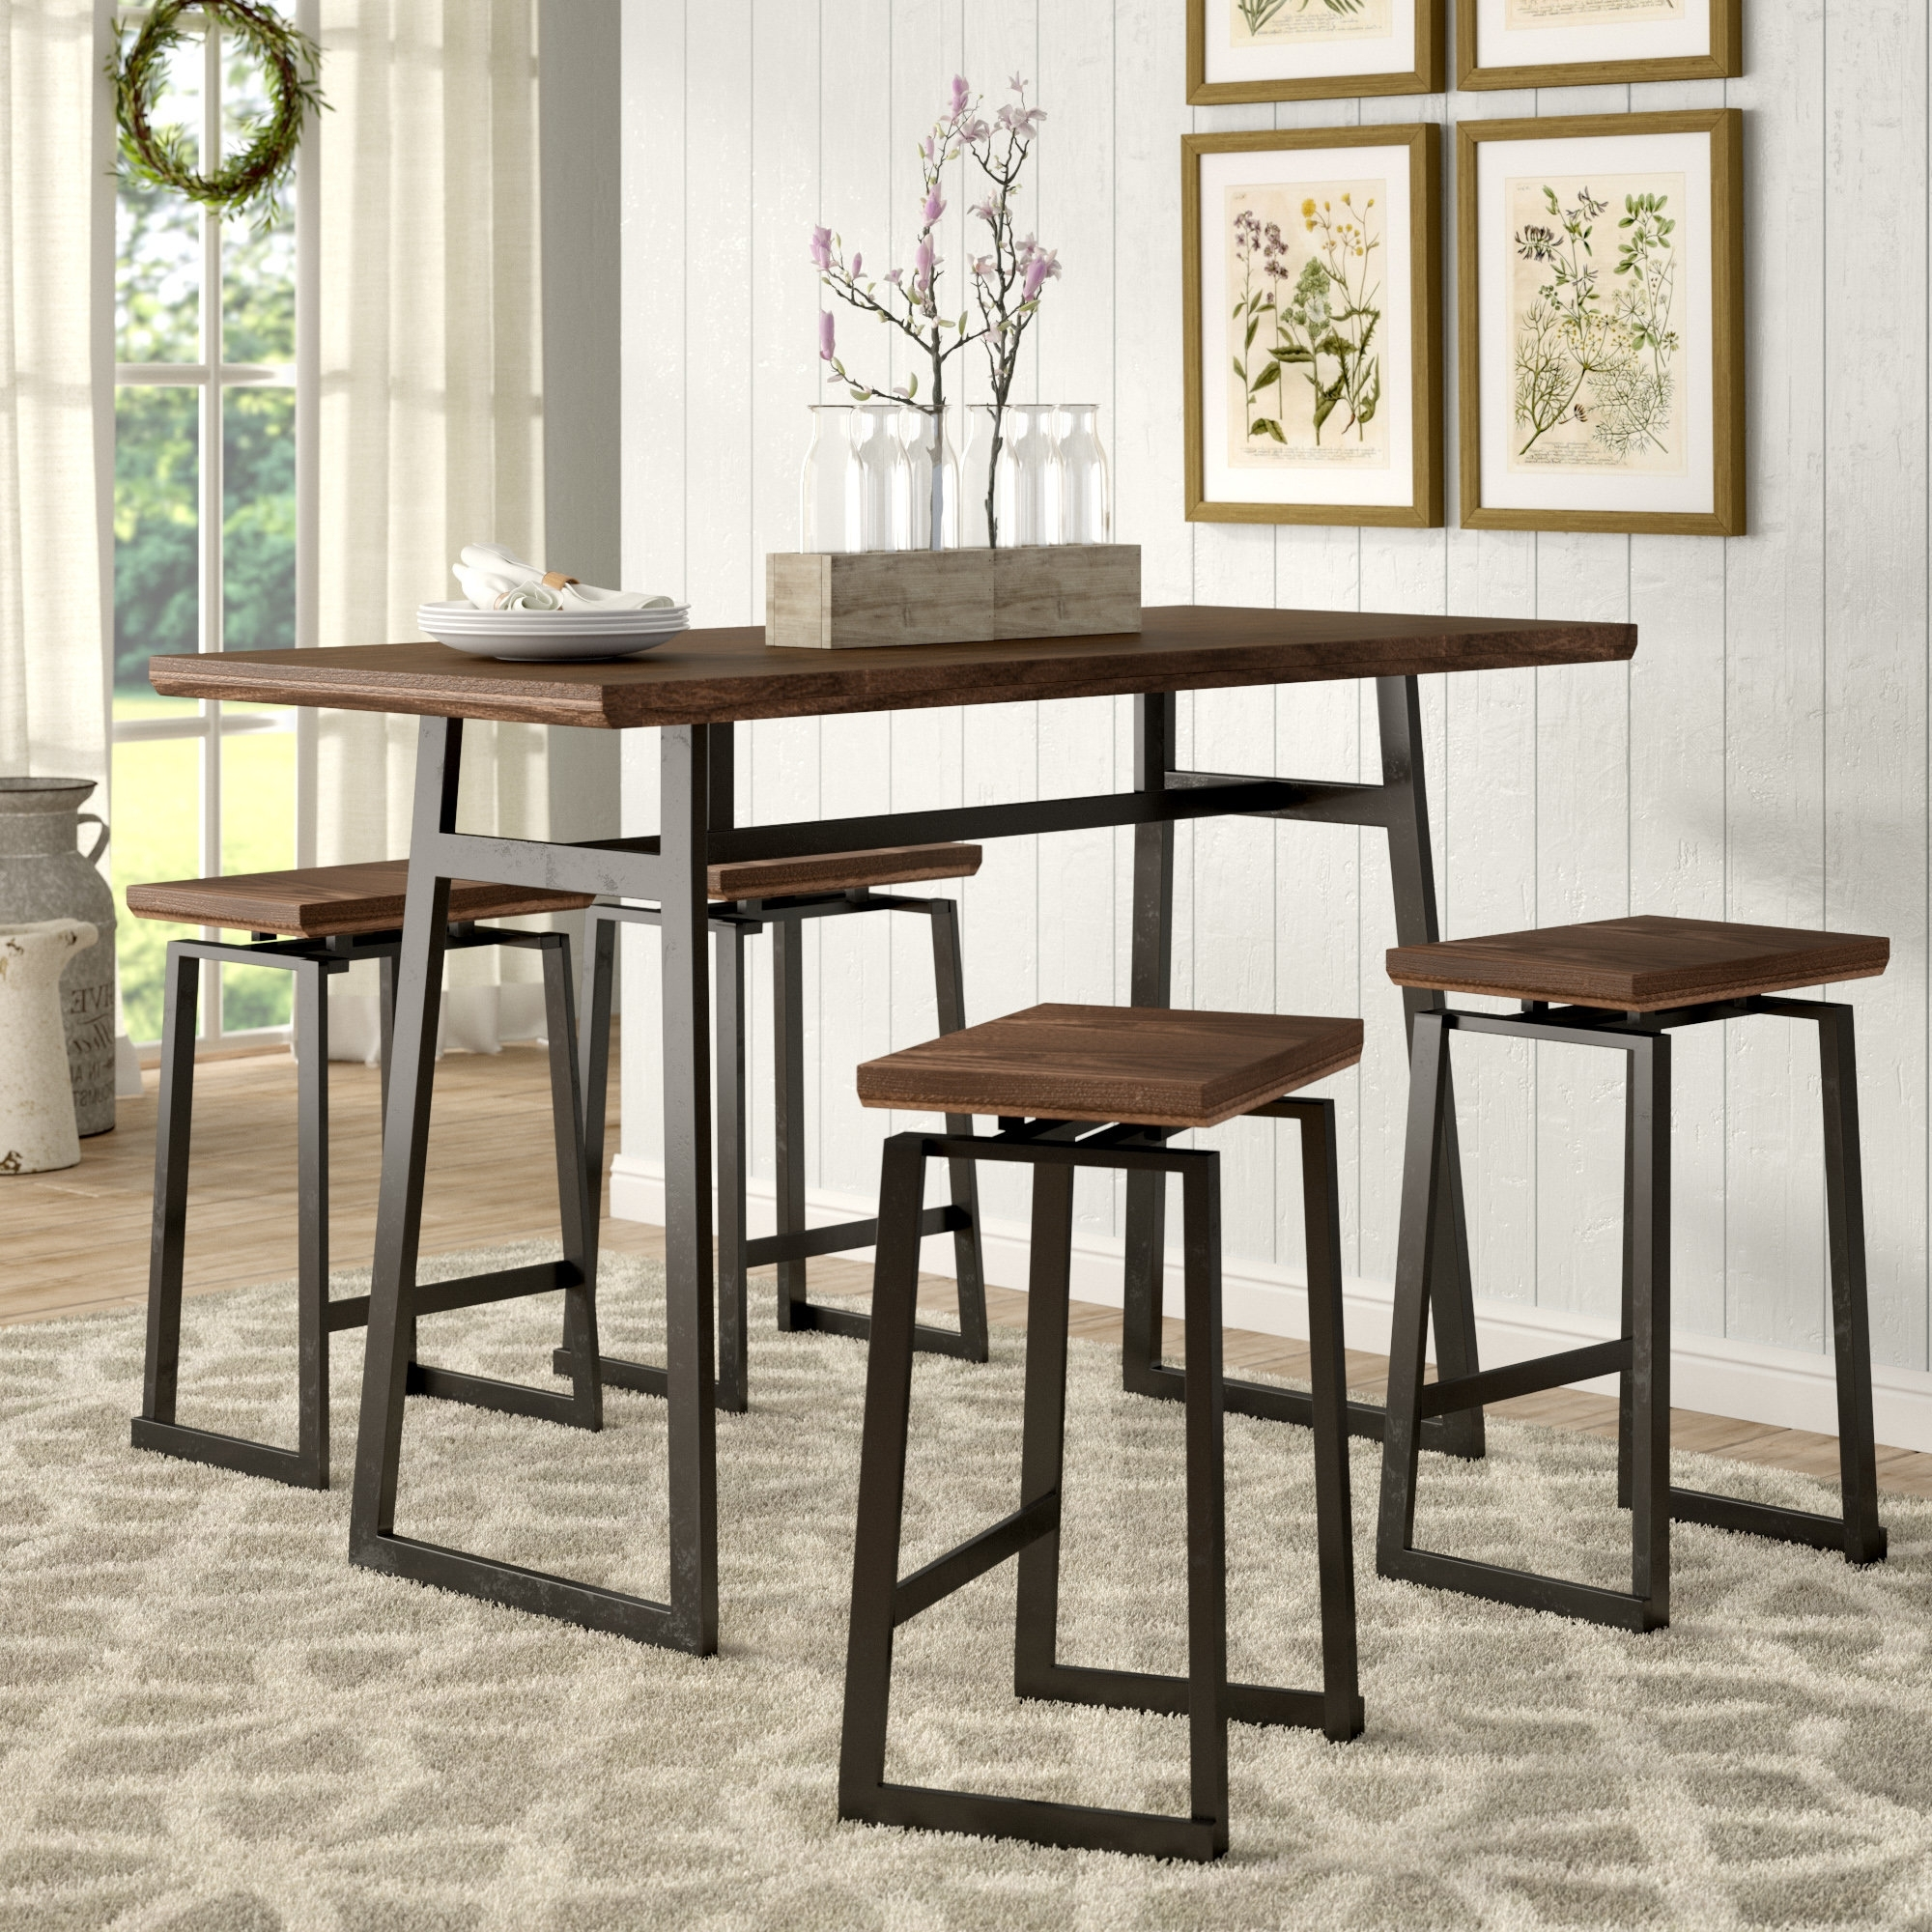 Preferred Gracie Oaks Platane Industrial 5 Piece Counter Height Dining Set In Jaxon 5 Piece Extension Counter Sets With Wood Stools (View 10 of 25)